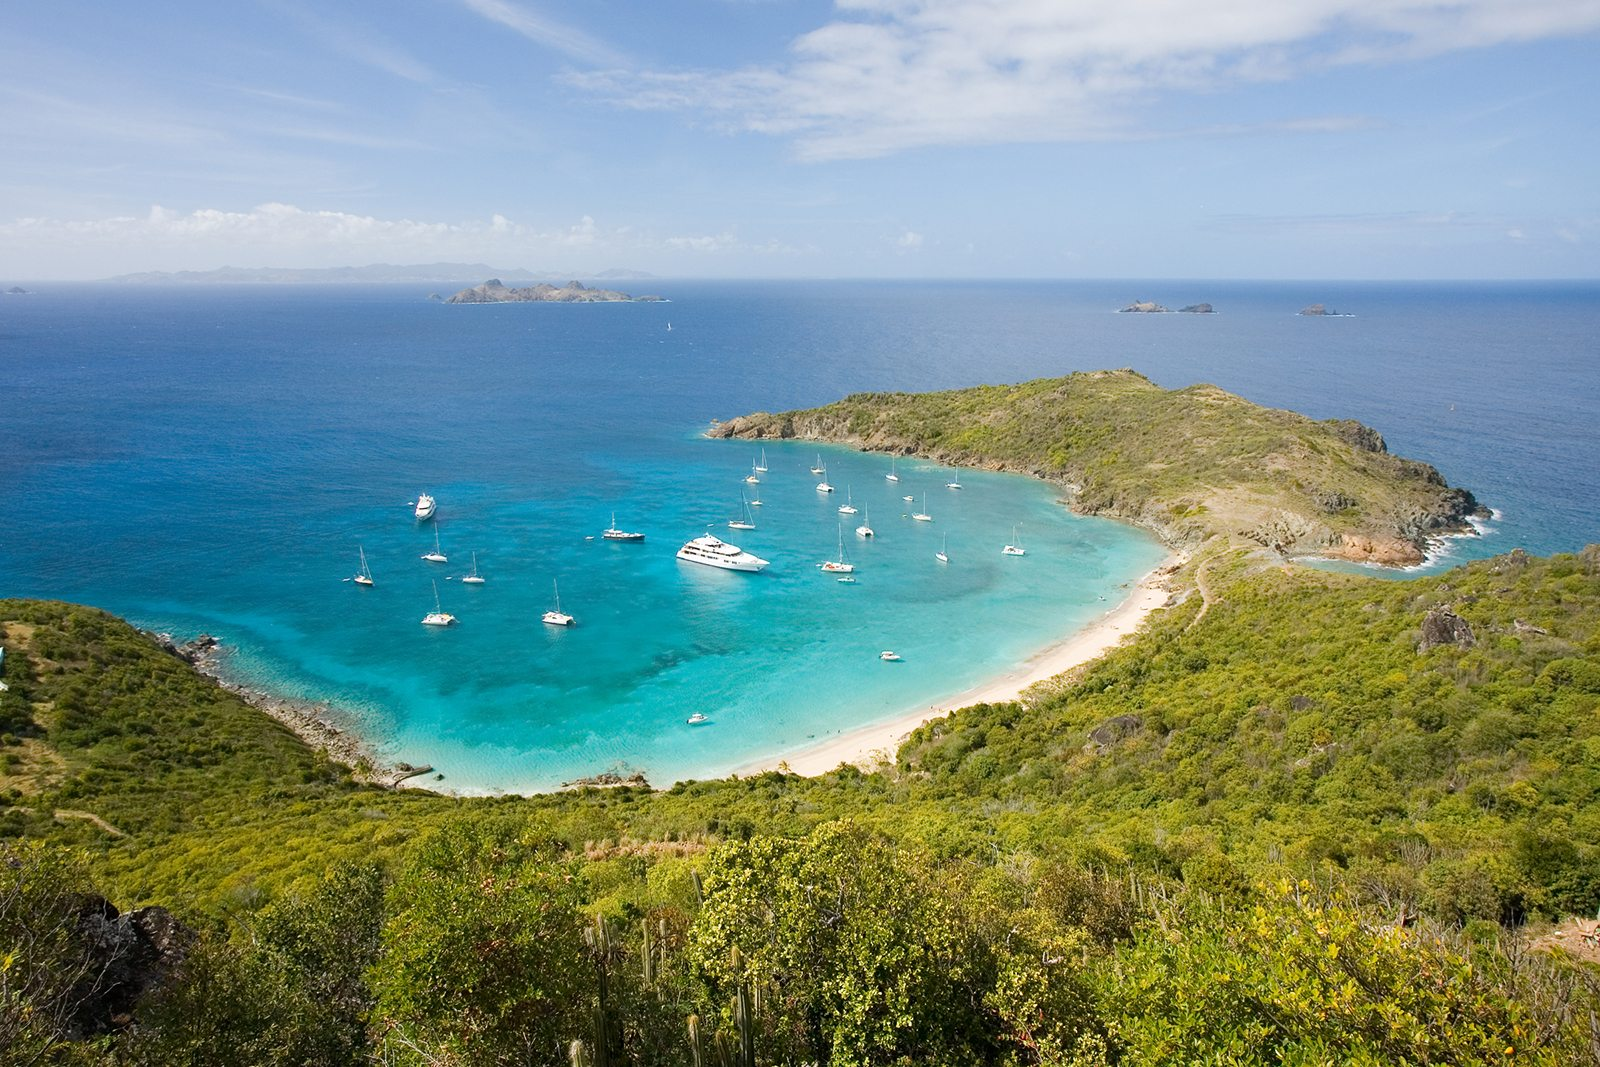 Colombier beach in St Barts